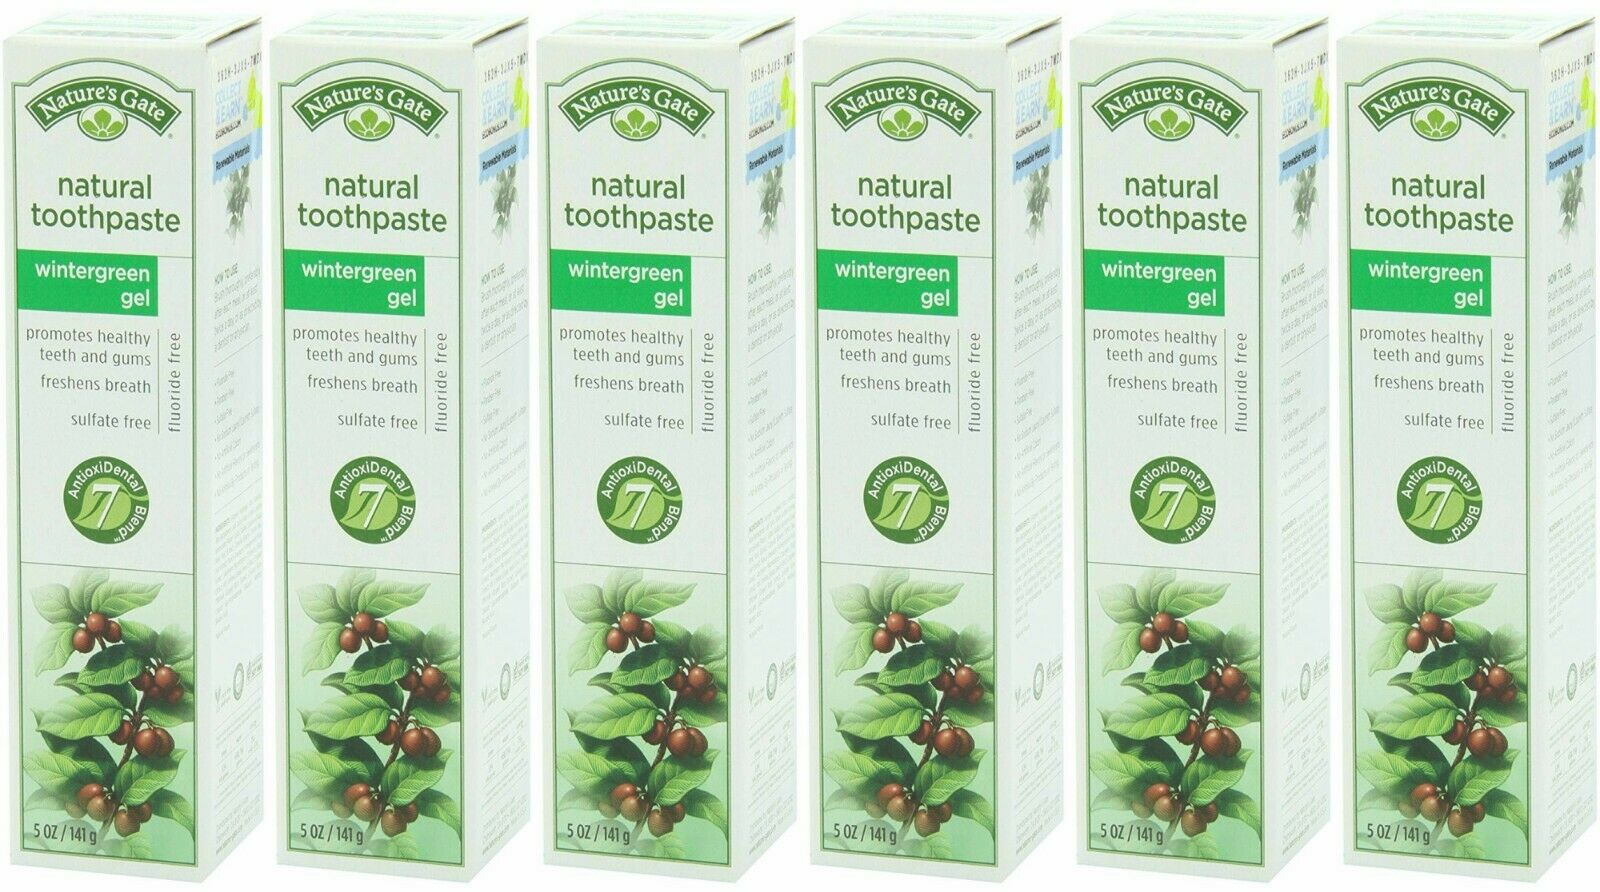 Nature's Gate Natural Toothpaste without Fluoride ...